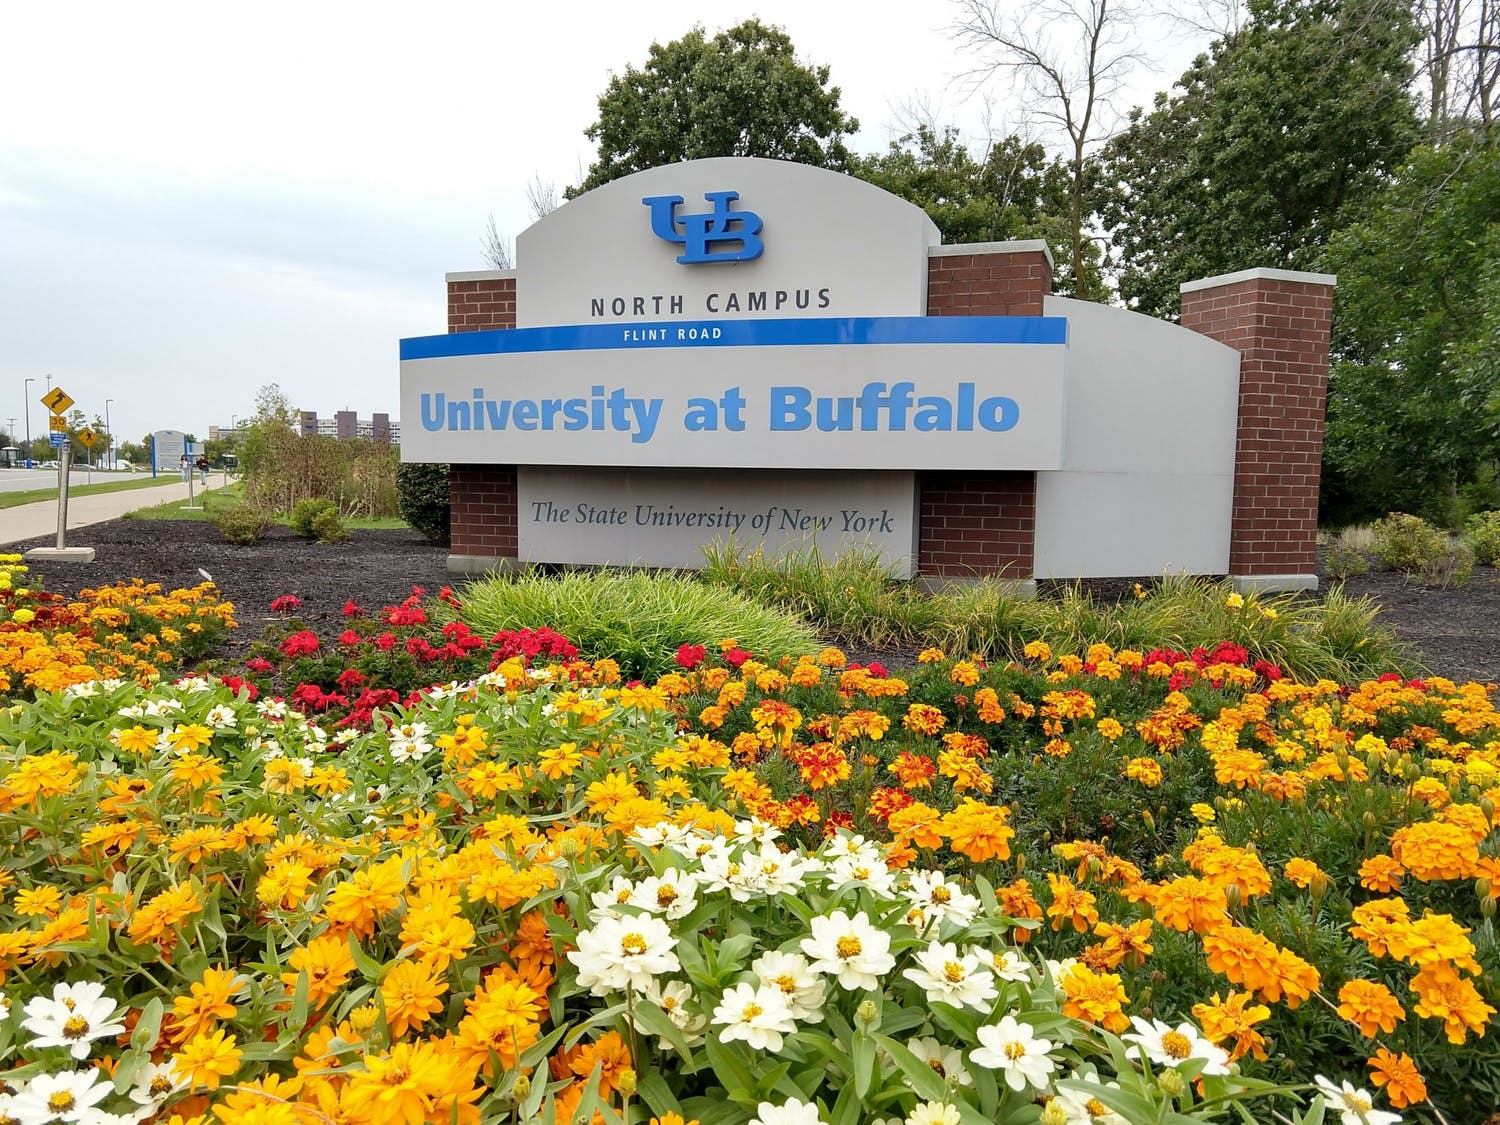 UB placed No. 88 in the U.S. News & World Report Best Colleges rankings